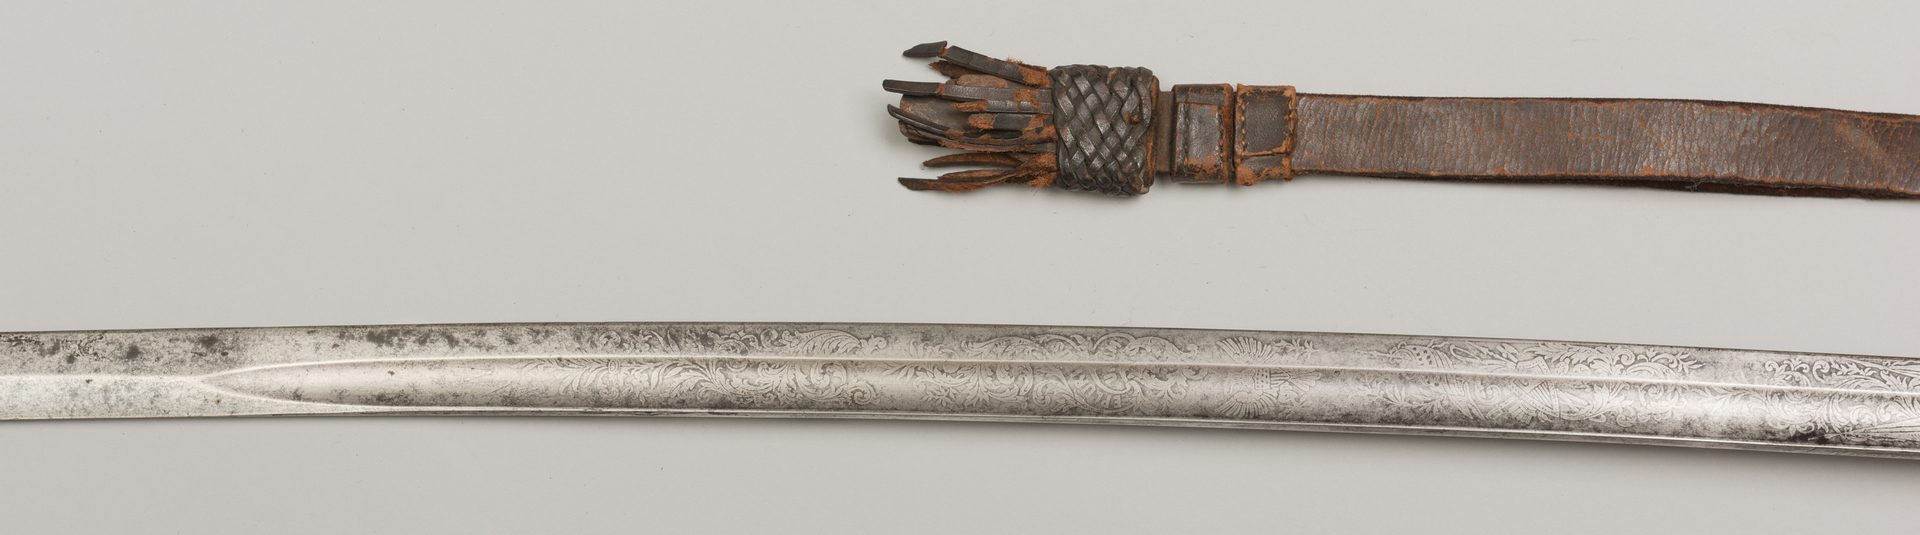 Lot 239: Model 1850 Solengen Staff & Field Sword